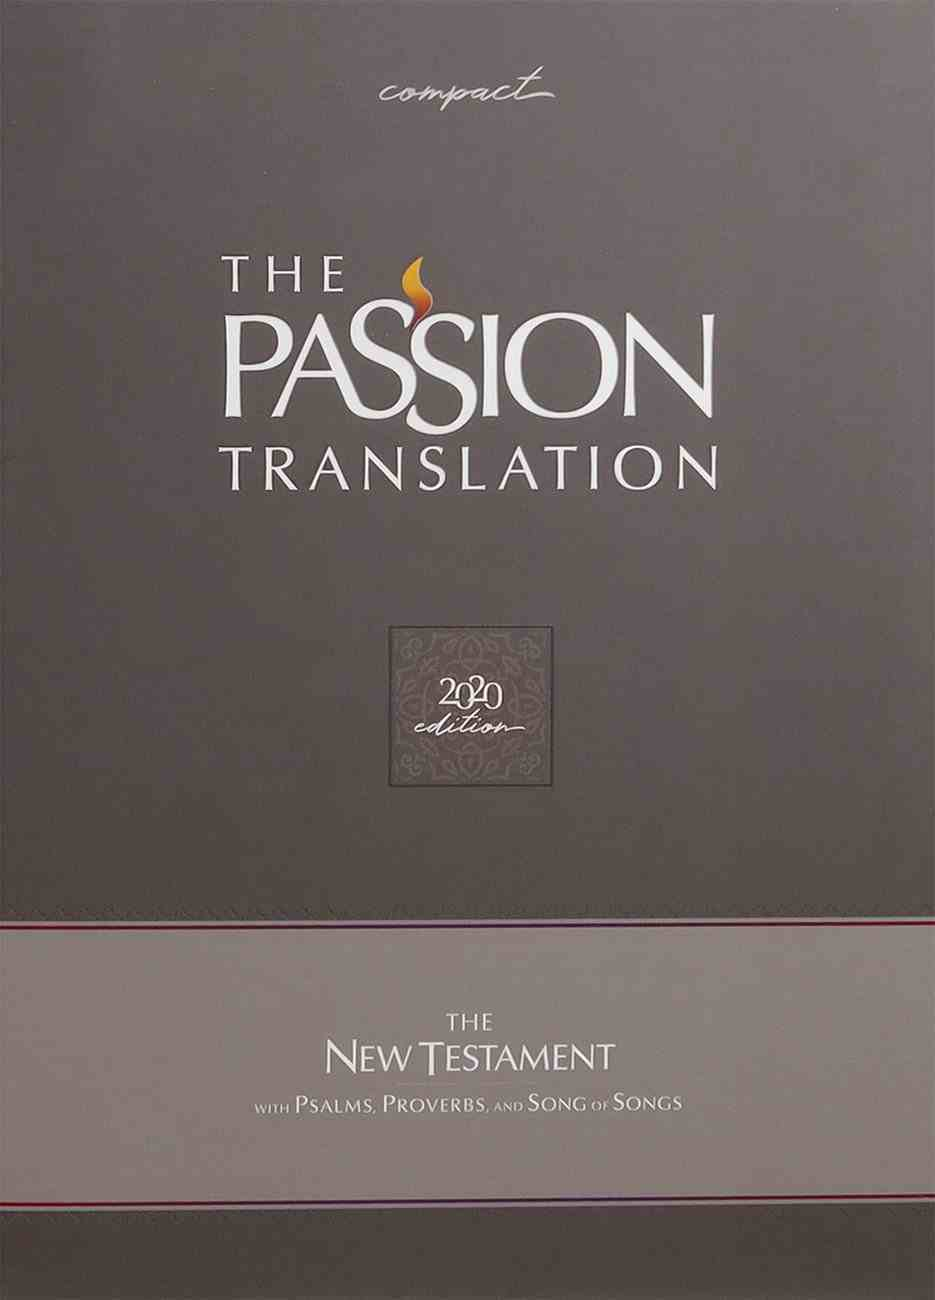 TPT New Testament Compact Violet (Black Letter Edition) (With Psalms, Proverbs And The Song Of Songs) Imitation Leather